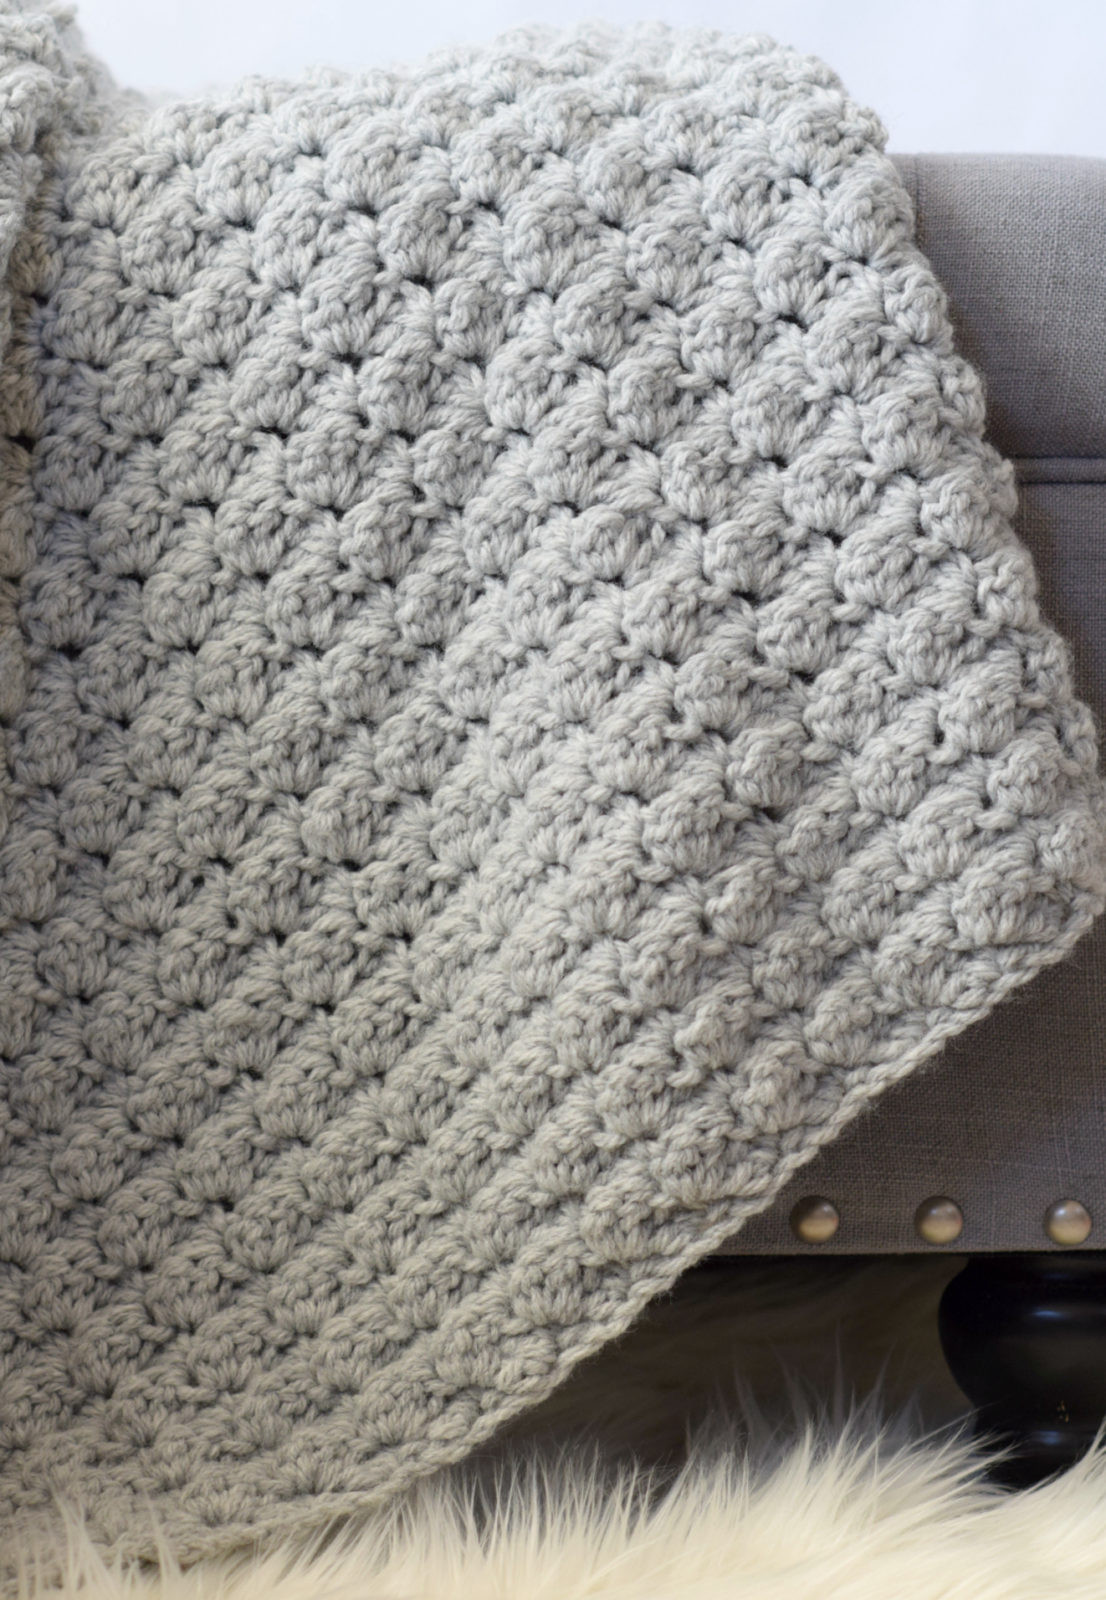 Easy Baby Afghan Crochet Patterns Beautiful Simple Crocheted Blanket Go to Pattern – Mama In A Stitch Of Unique 42 Ideas Easy Baby Afghan Crochet Patterns